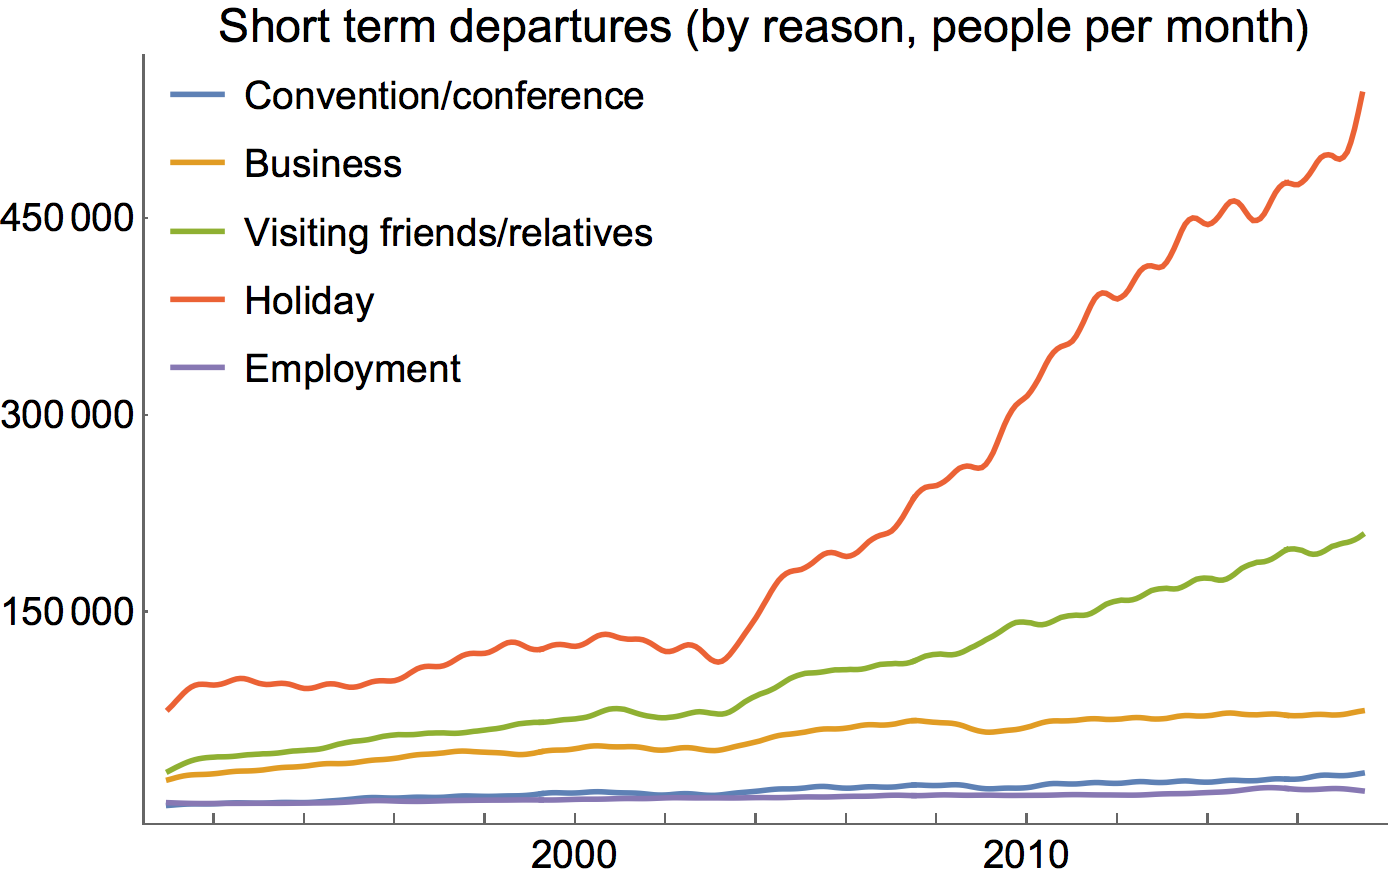 Holiday travel seems to have risen the fastest